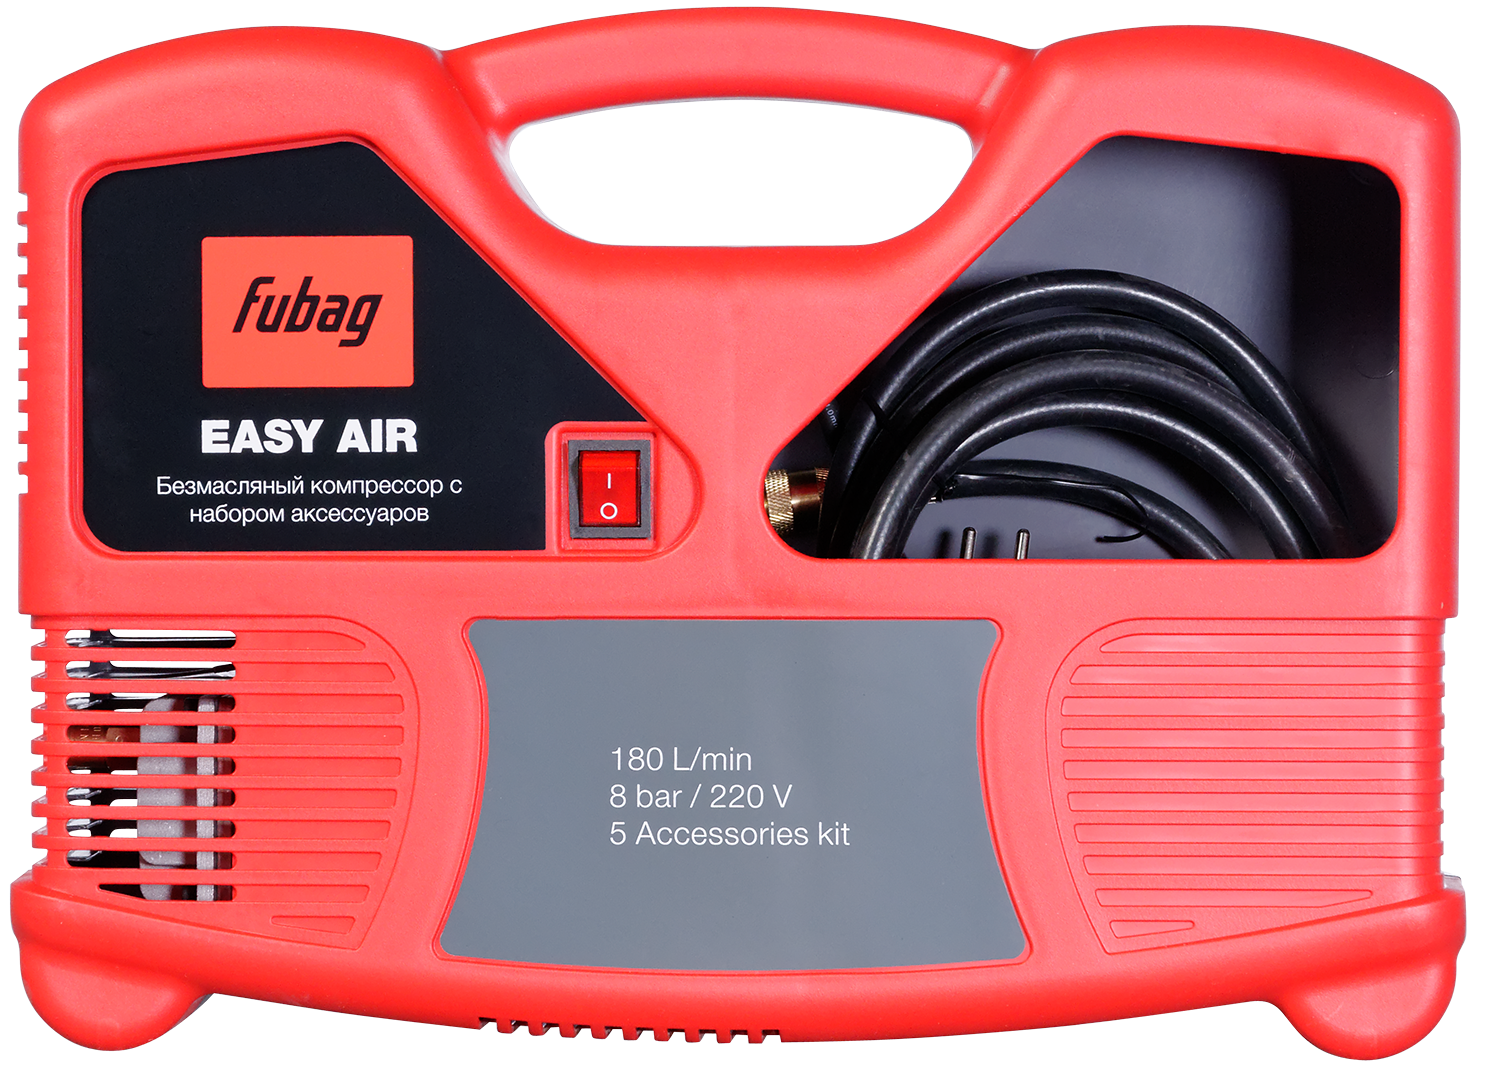 FUBAG Easy Air